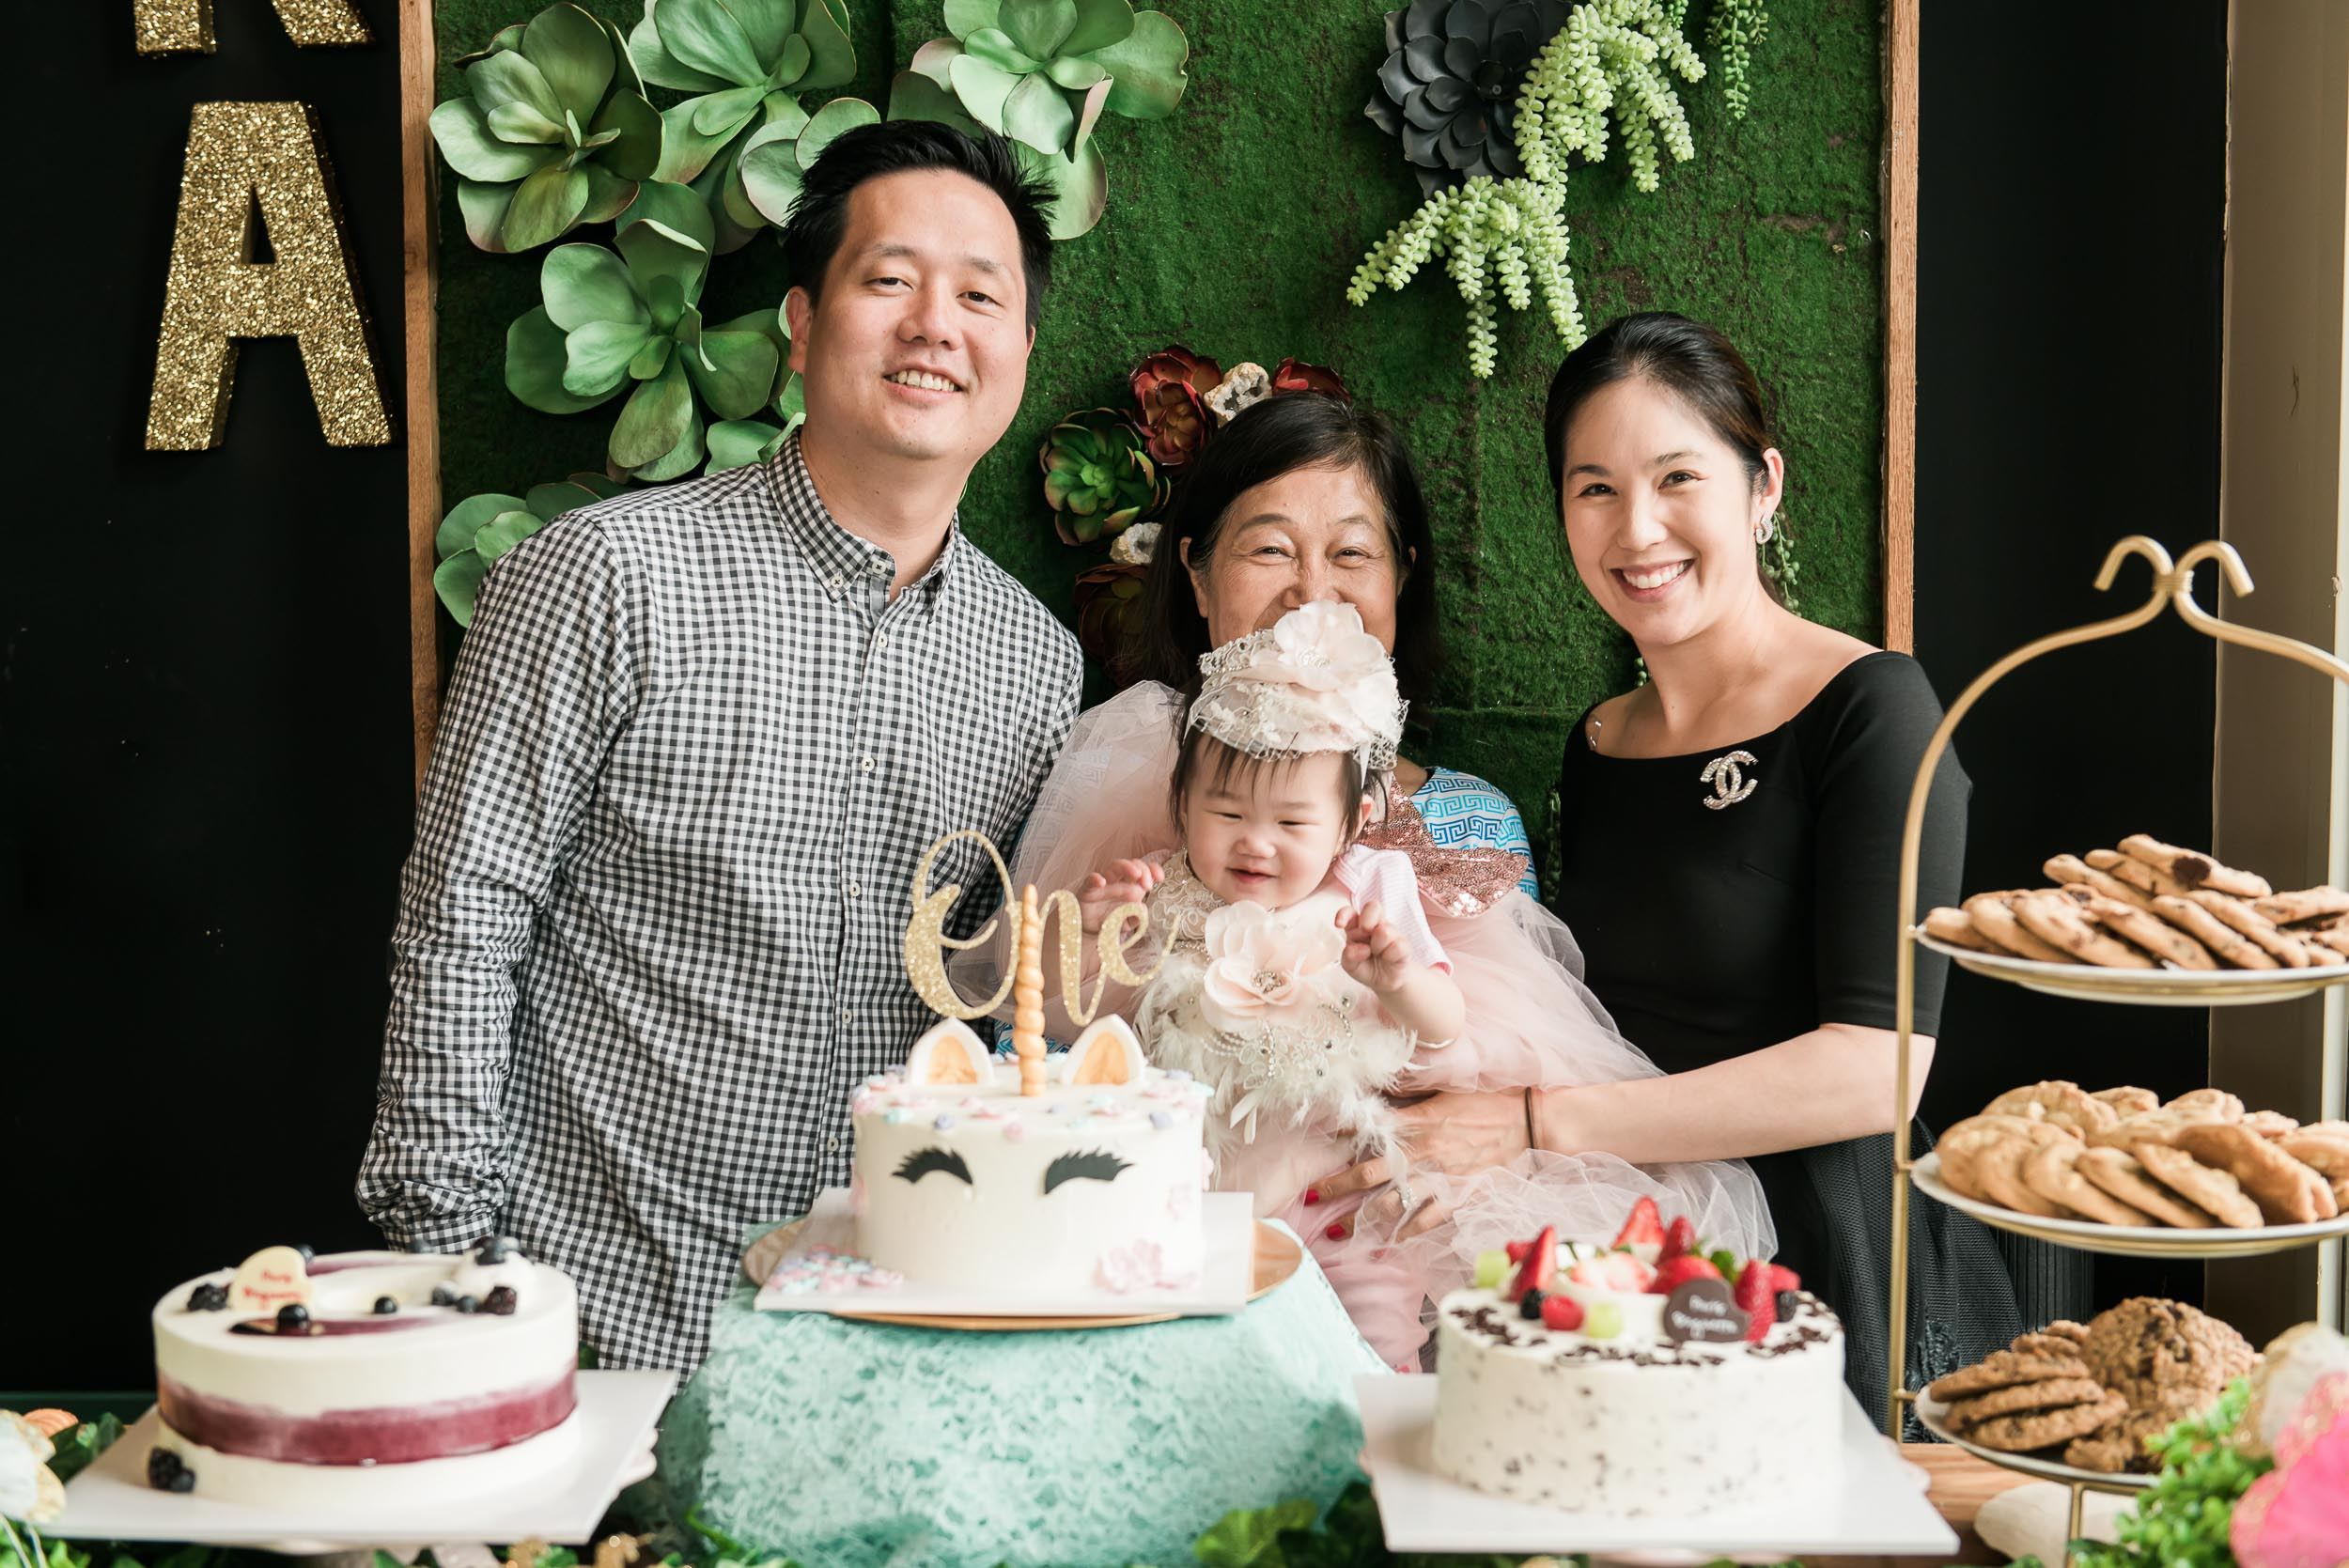 Bryan-Miraflor-Photography-Clara-First-Birthday-Pavillion-Park-OC-20170226-0050.jpg